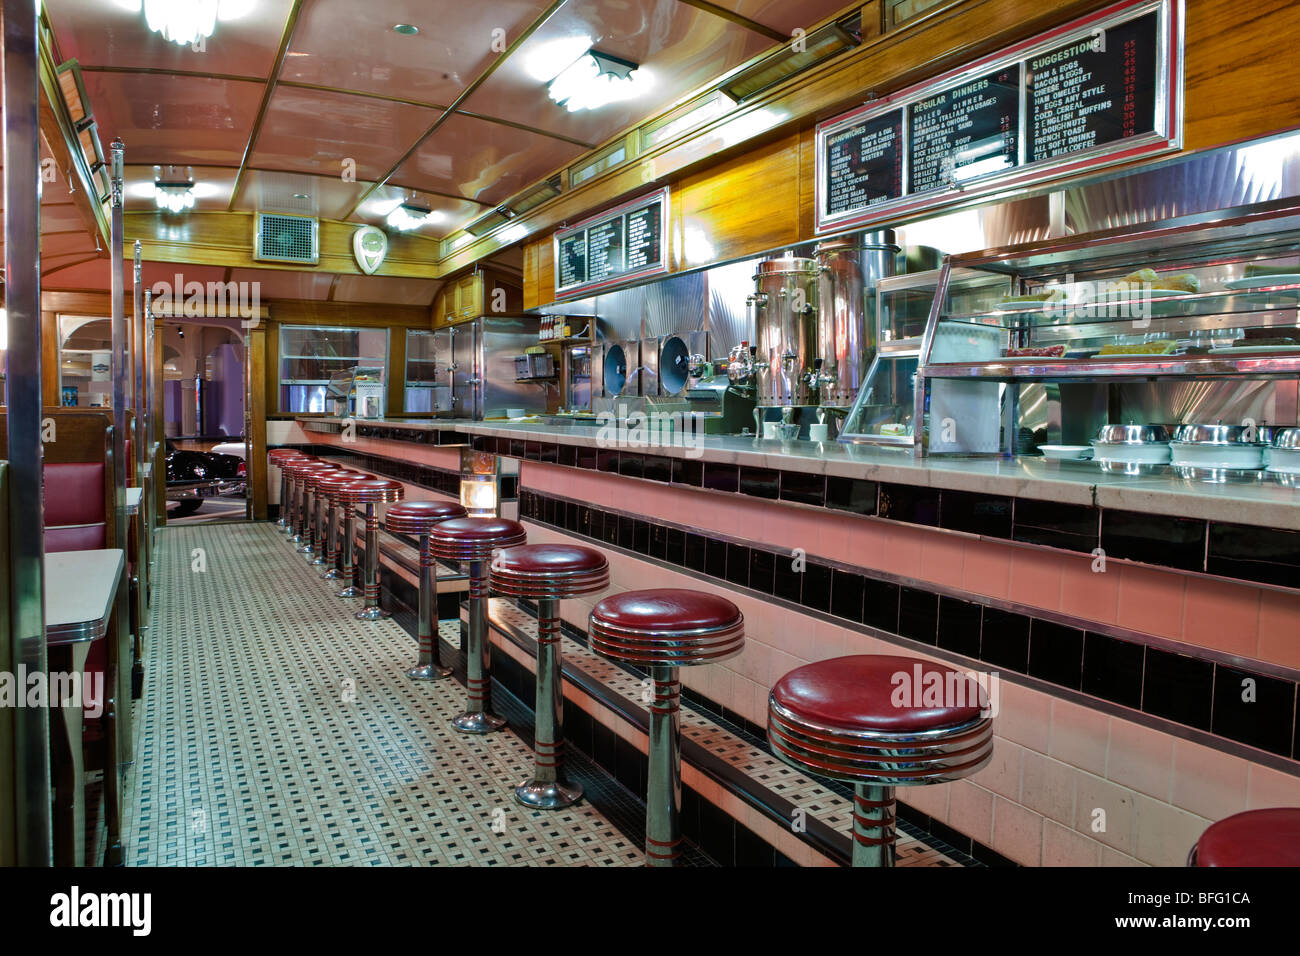 Fifties Era Diner. - Stock Image